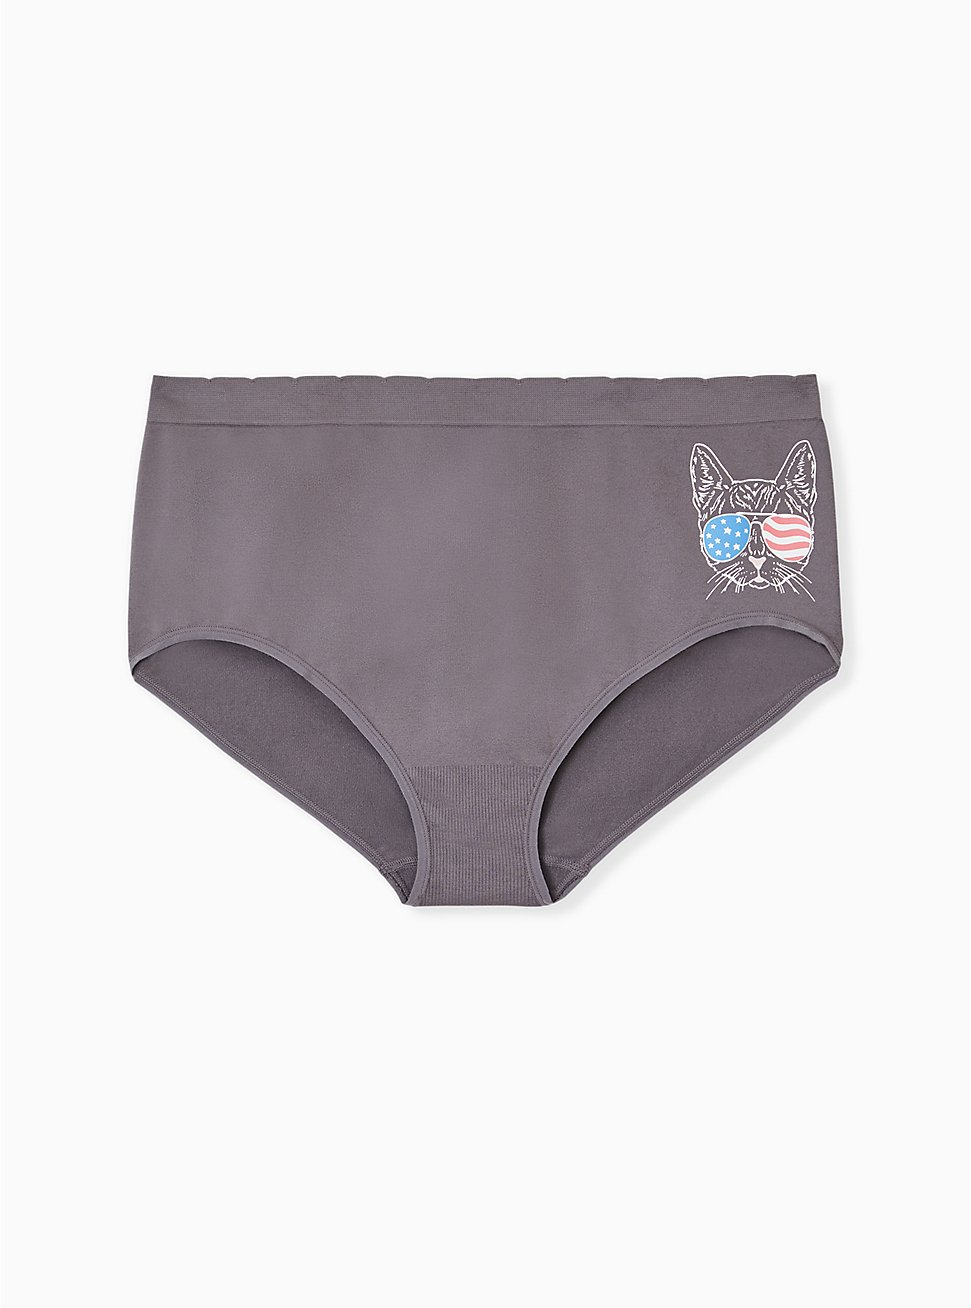 Grey American Cat Seamless Brief Panty , AMERICANA KITTY- BLACK, hi-res